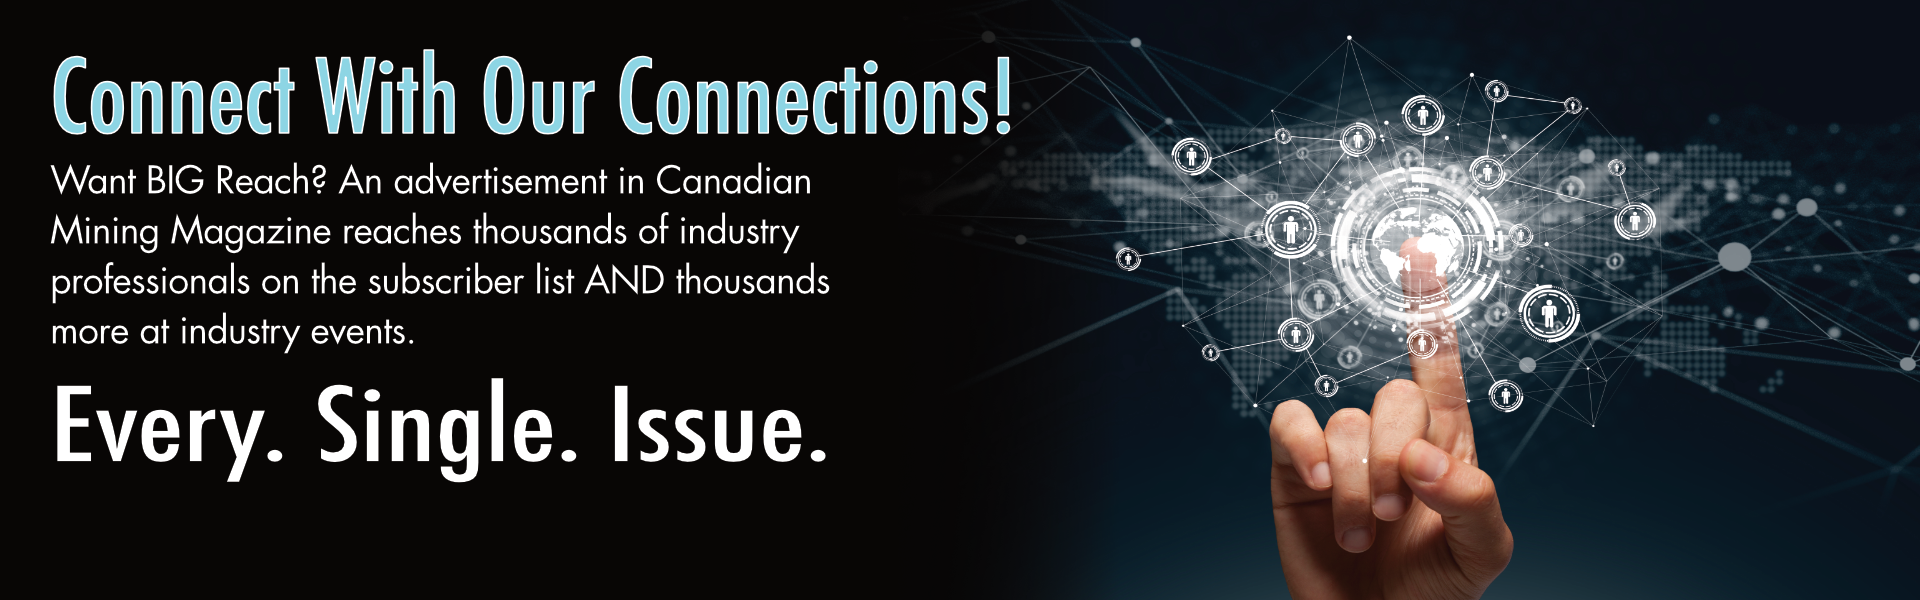 Advertise in Canadian Mining Magazine!